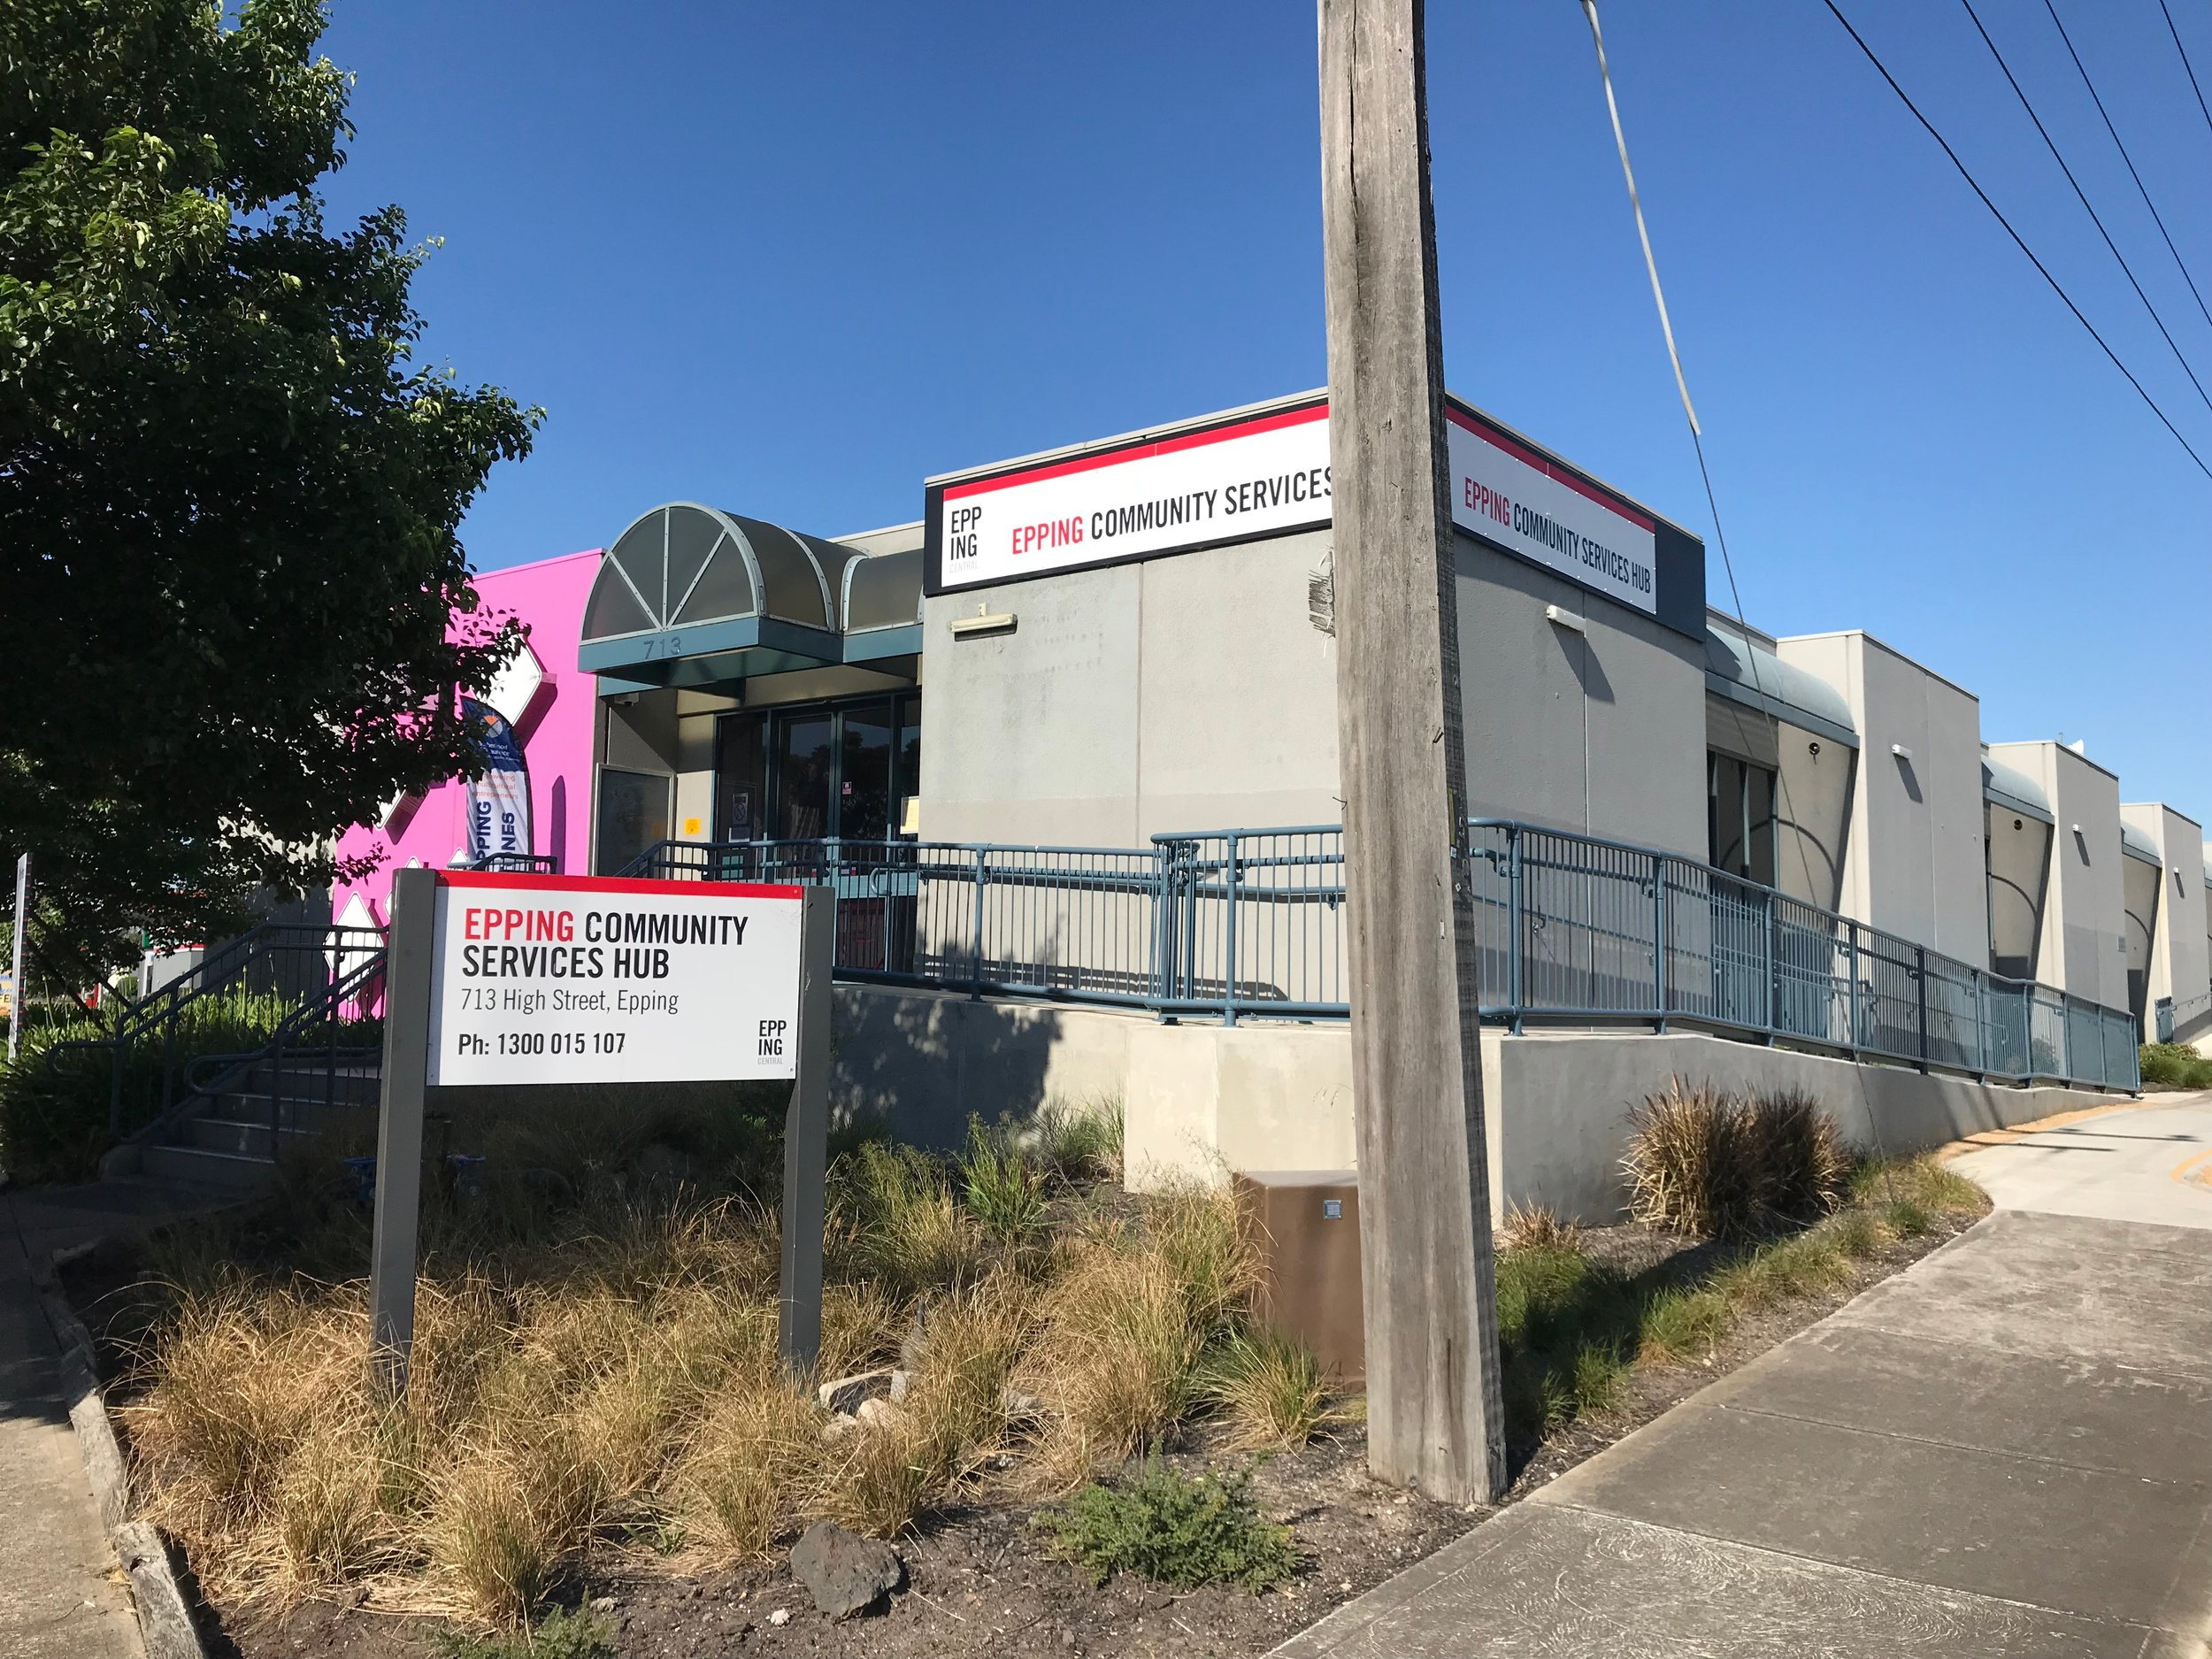 The Epping Community Services Hub is housed in a former Centrelink building, sold to Council for a discounted rate based on a good will agreement that it would be used for community uses. The bright pink exterior wall ensures that everyone that passes by is aware of the hub.